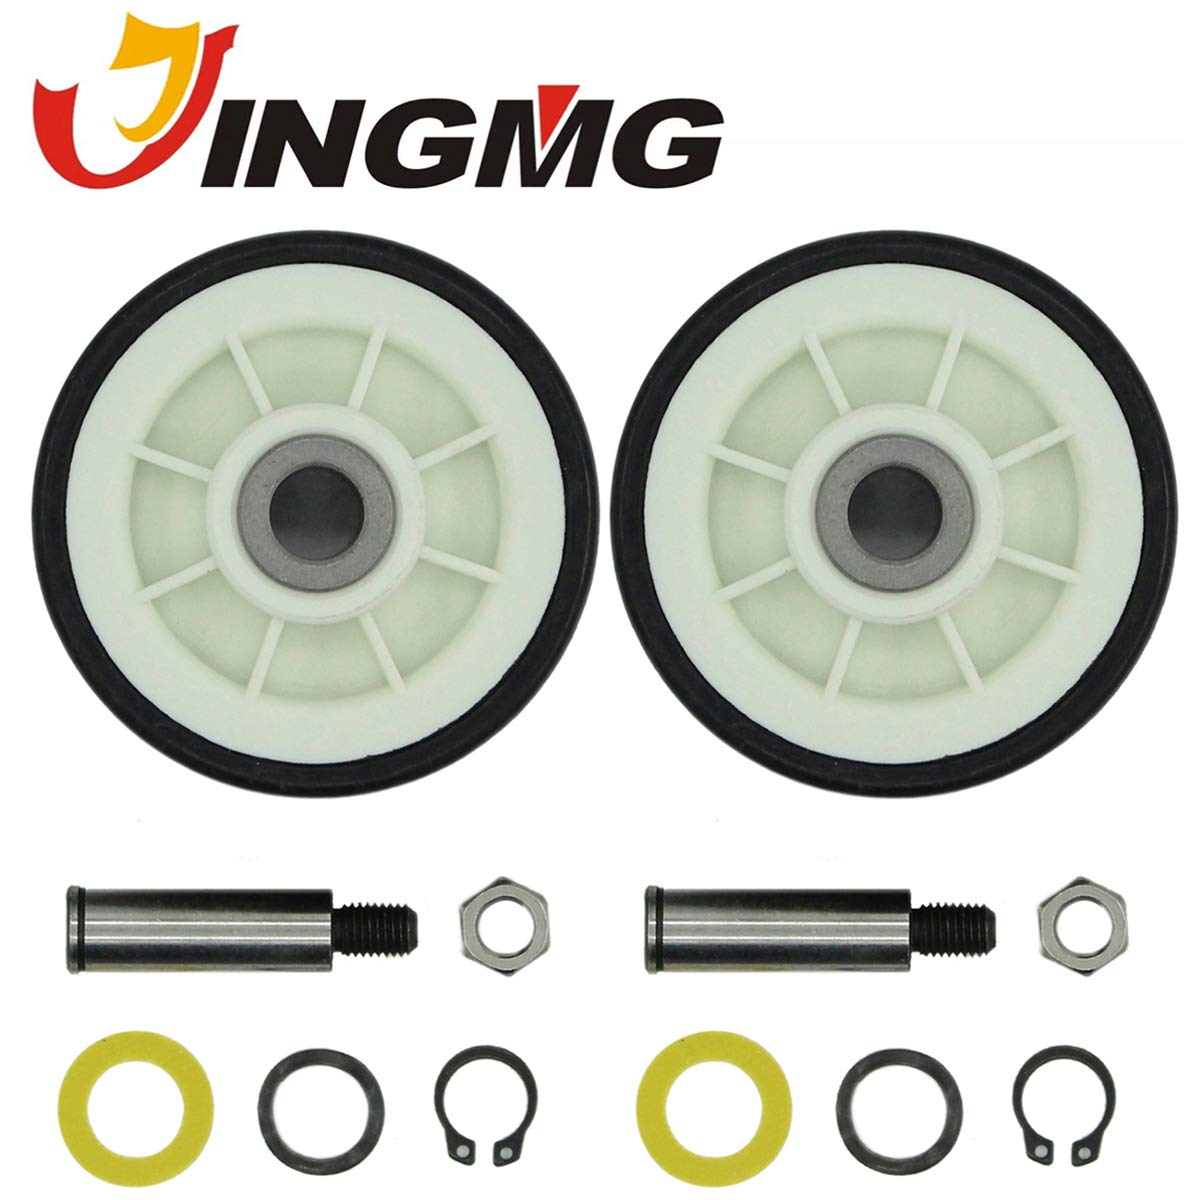 Jingmg 303373K Drum Roller with Shaft Dryer Wheel Support Kit Fit for Whirlpool & Maytag Dryer (2 Pack)